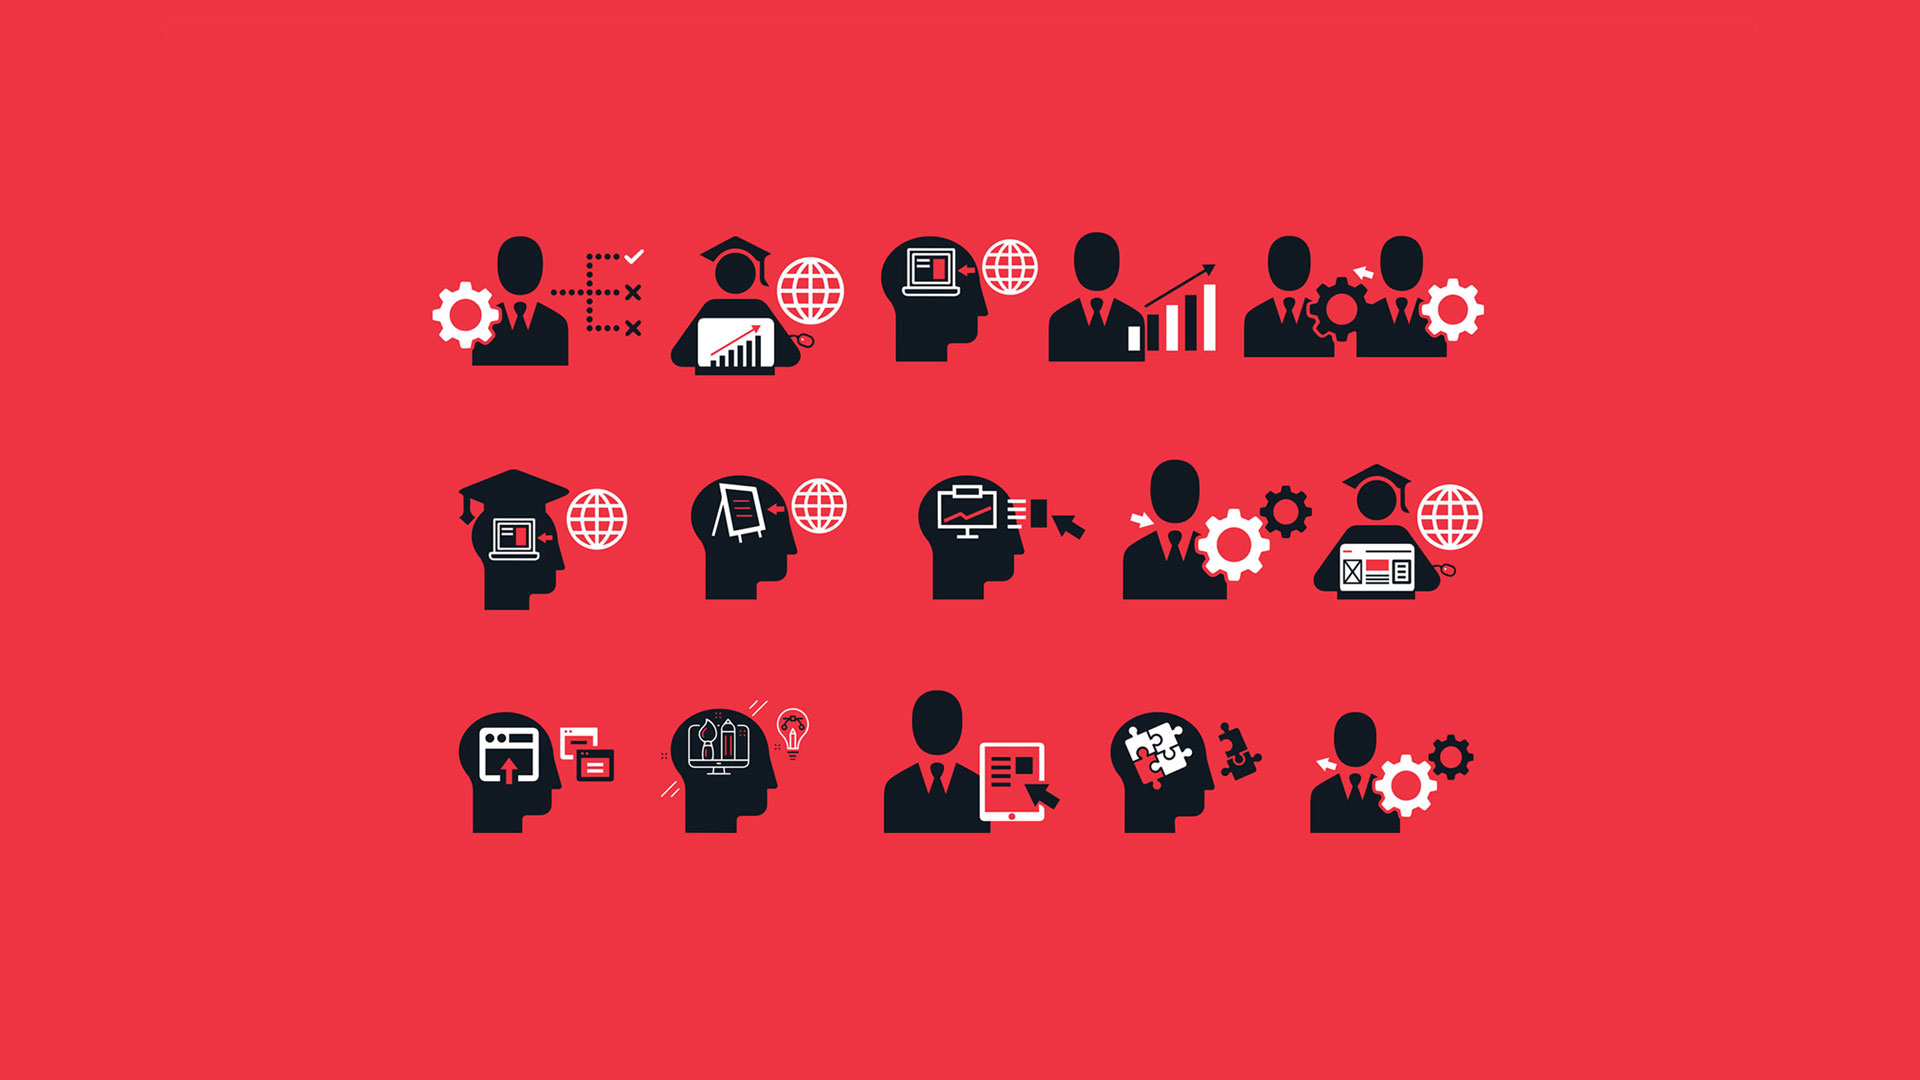 job icons for traffic today which is a digital marketing agency